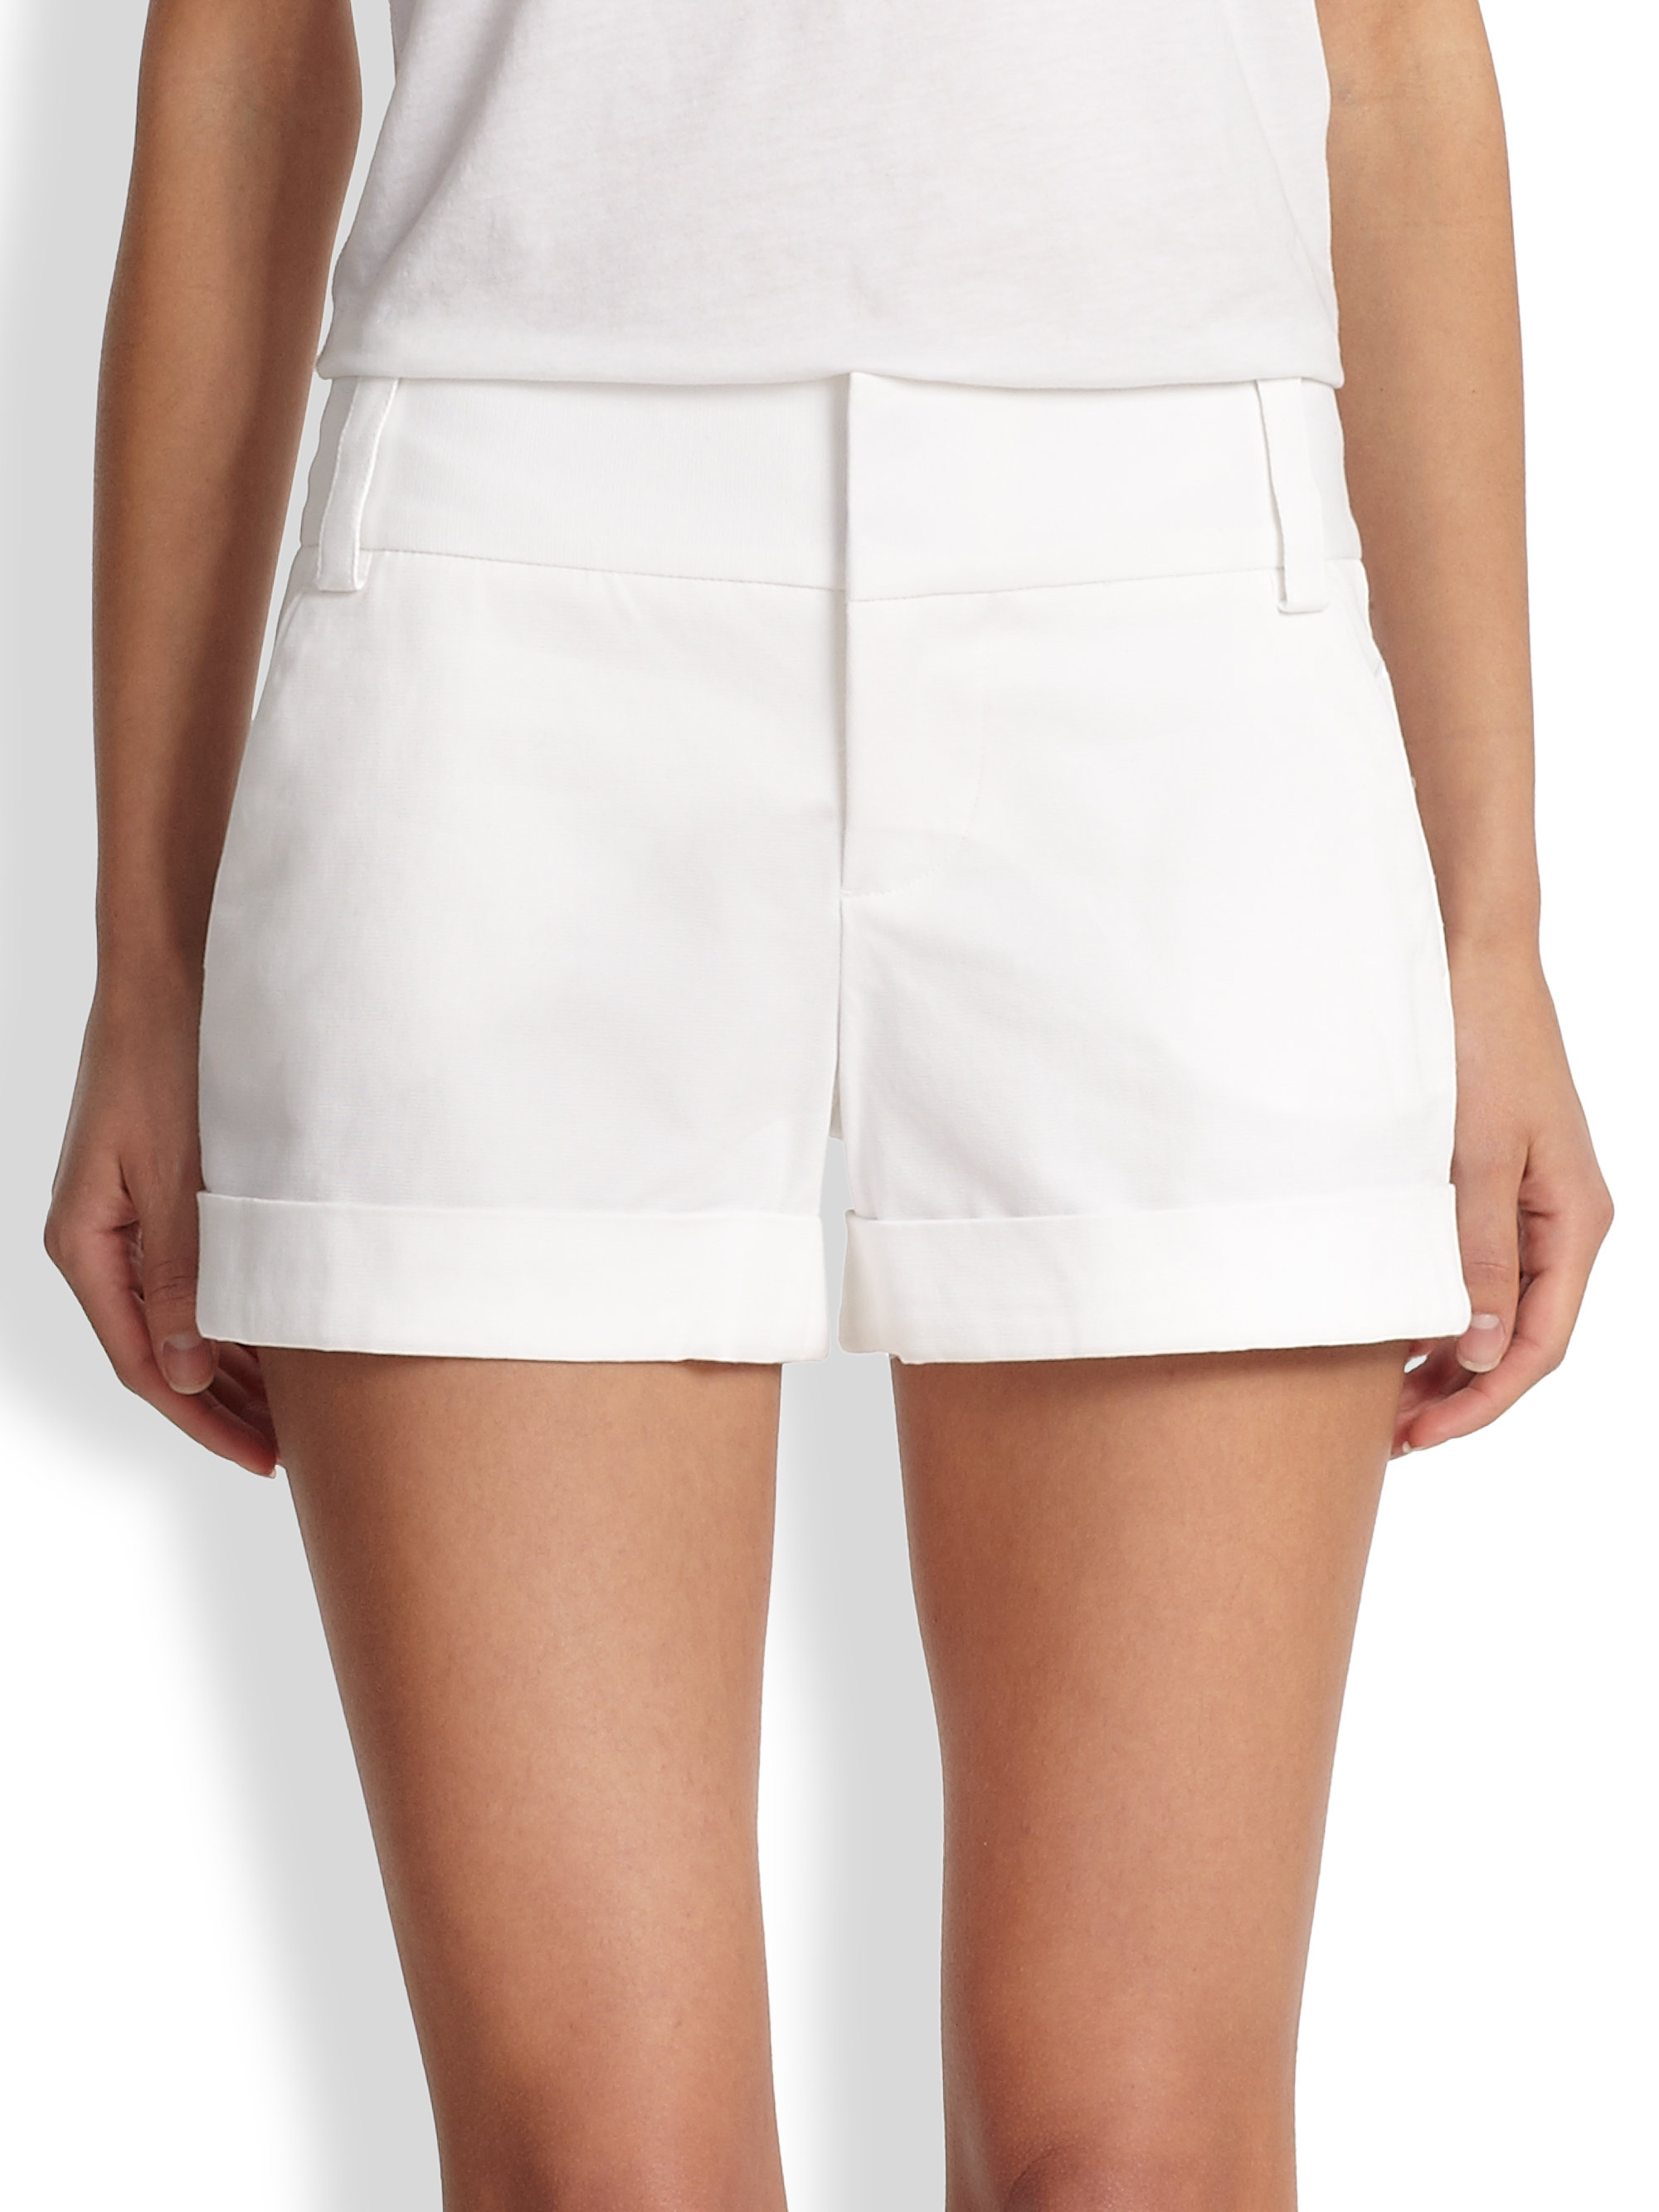 Alice   olivia Cady Cuffed Shorts in White | Lyst